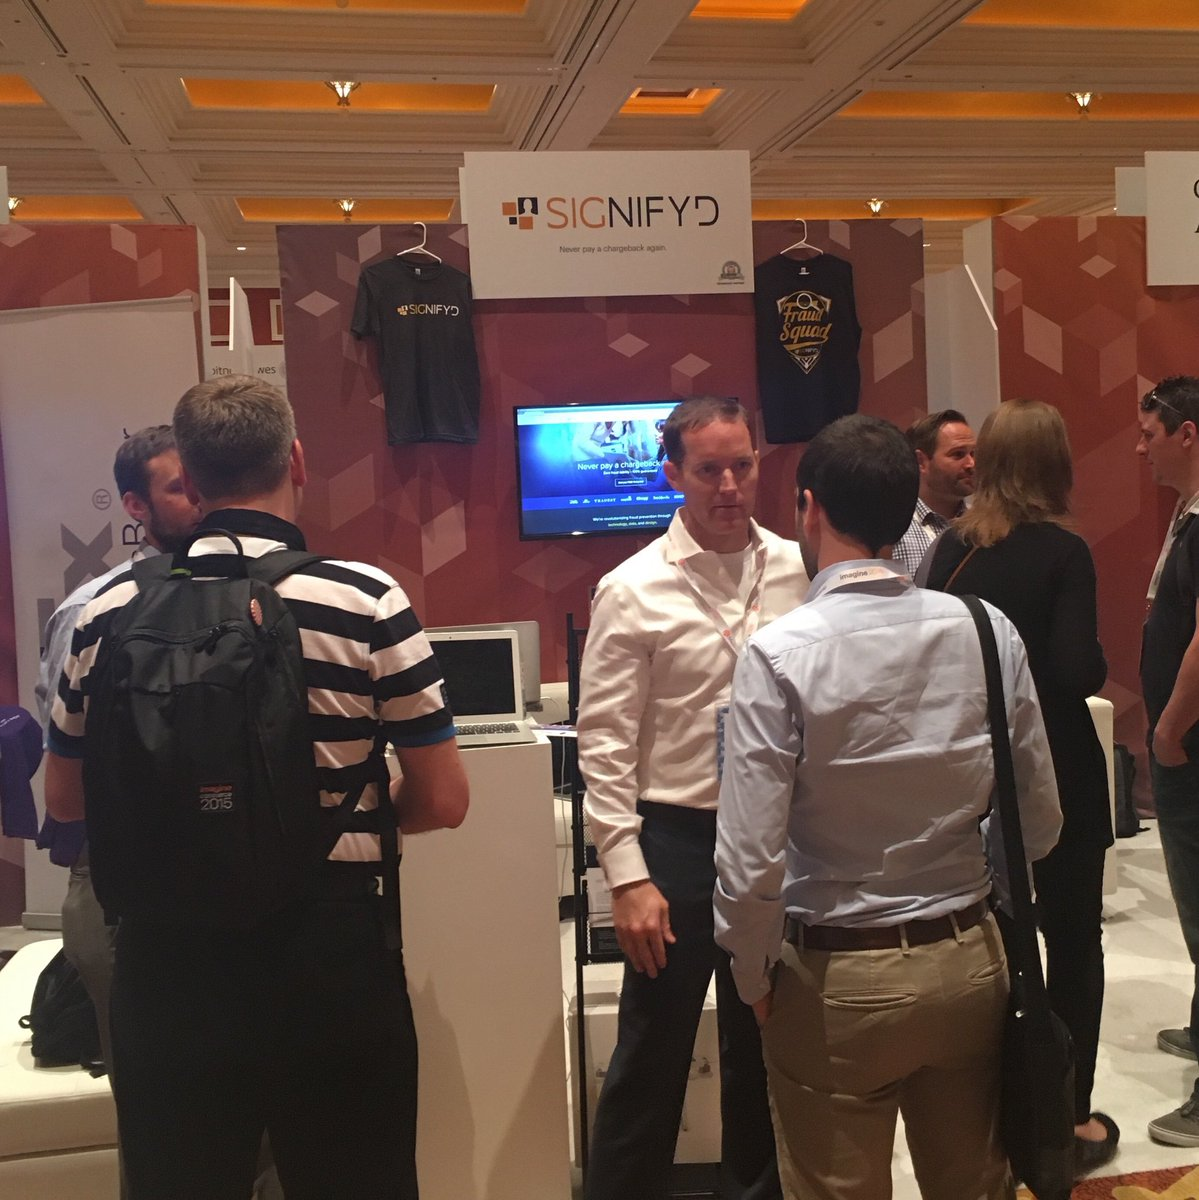 signifyd: At #MagentoImagine? Come meet the @signifyd team at booth 110 + enter our case contest. (Plus, win an Apple Watch!) https://t.co/ztjVoxqYY7